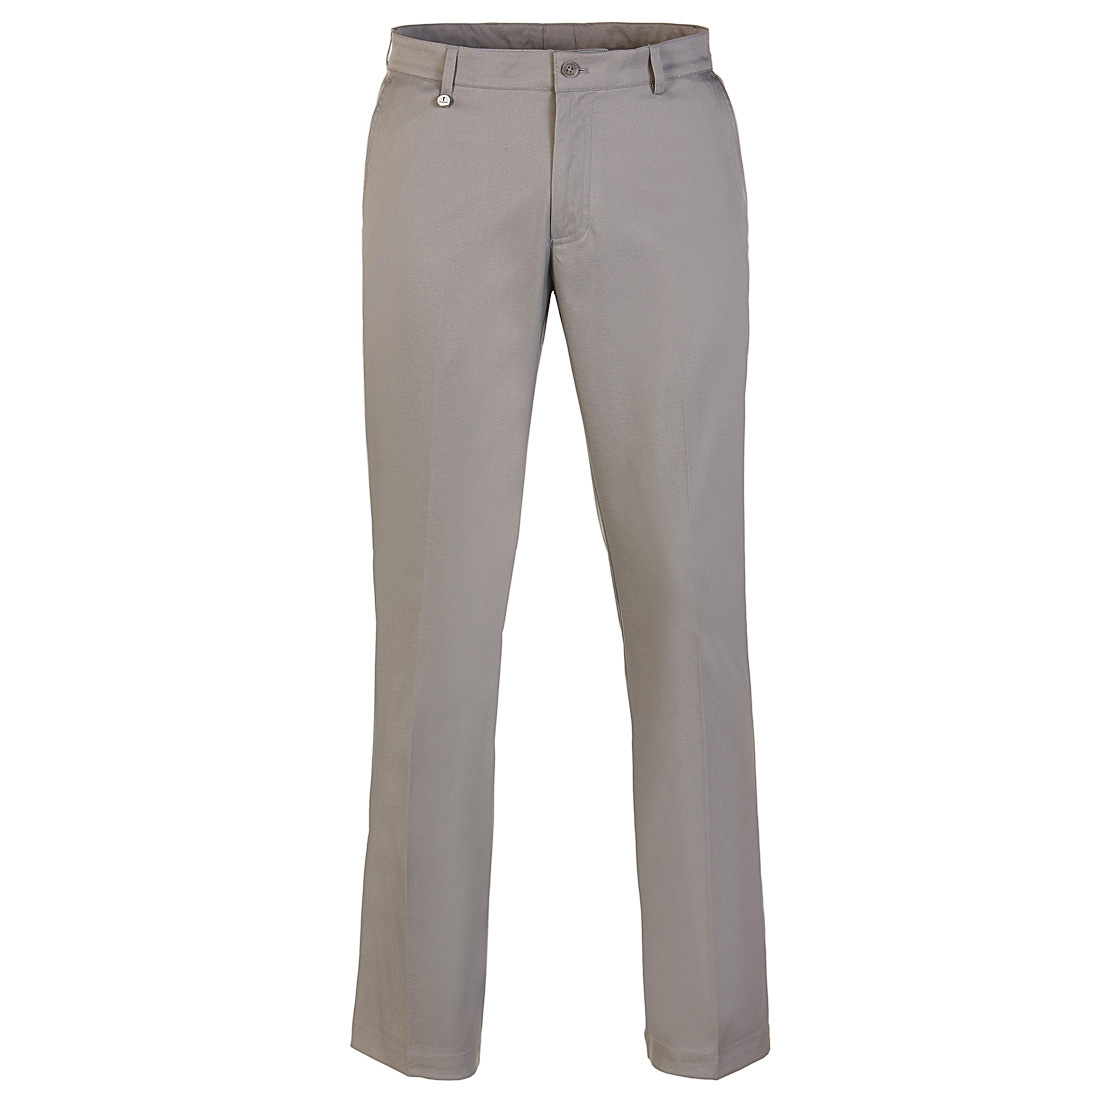 Schnelltrocknende Hose Silver grey light